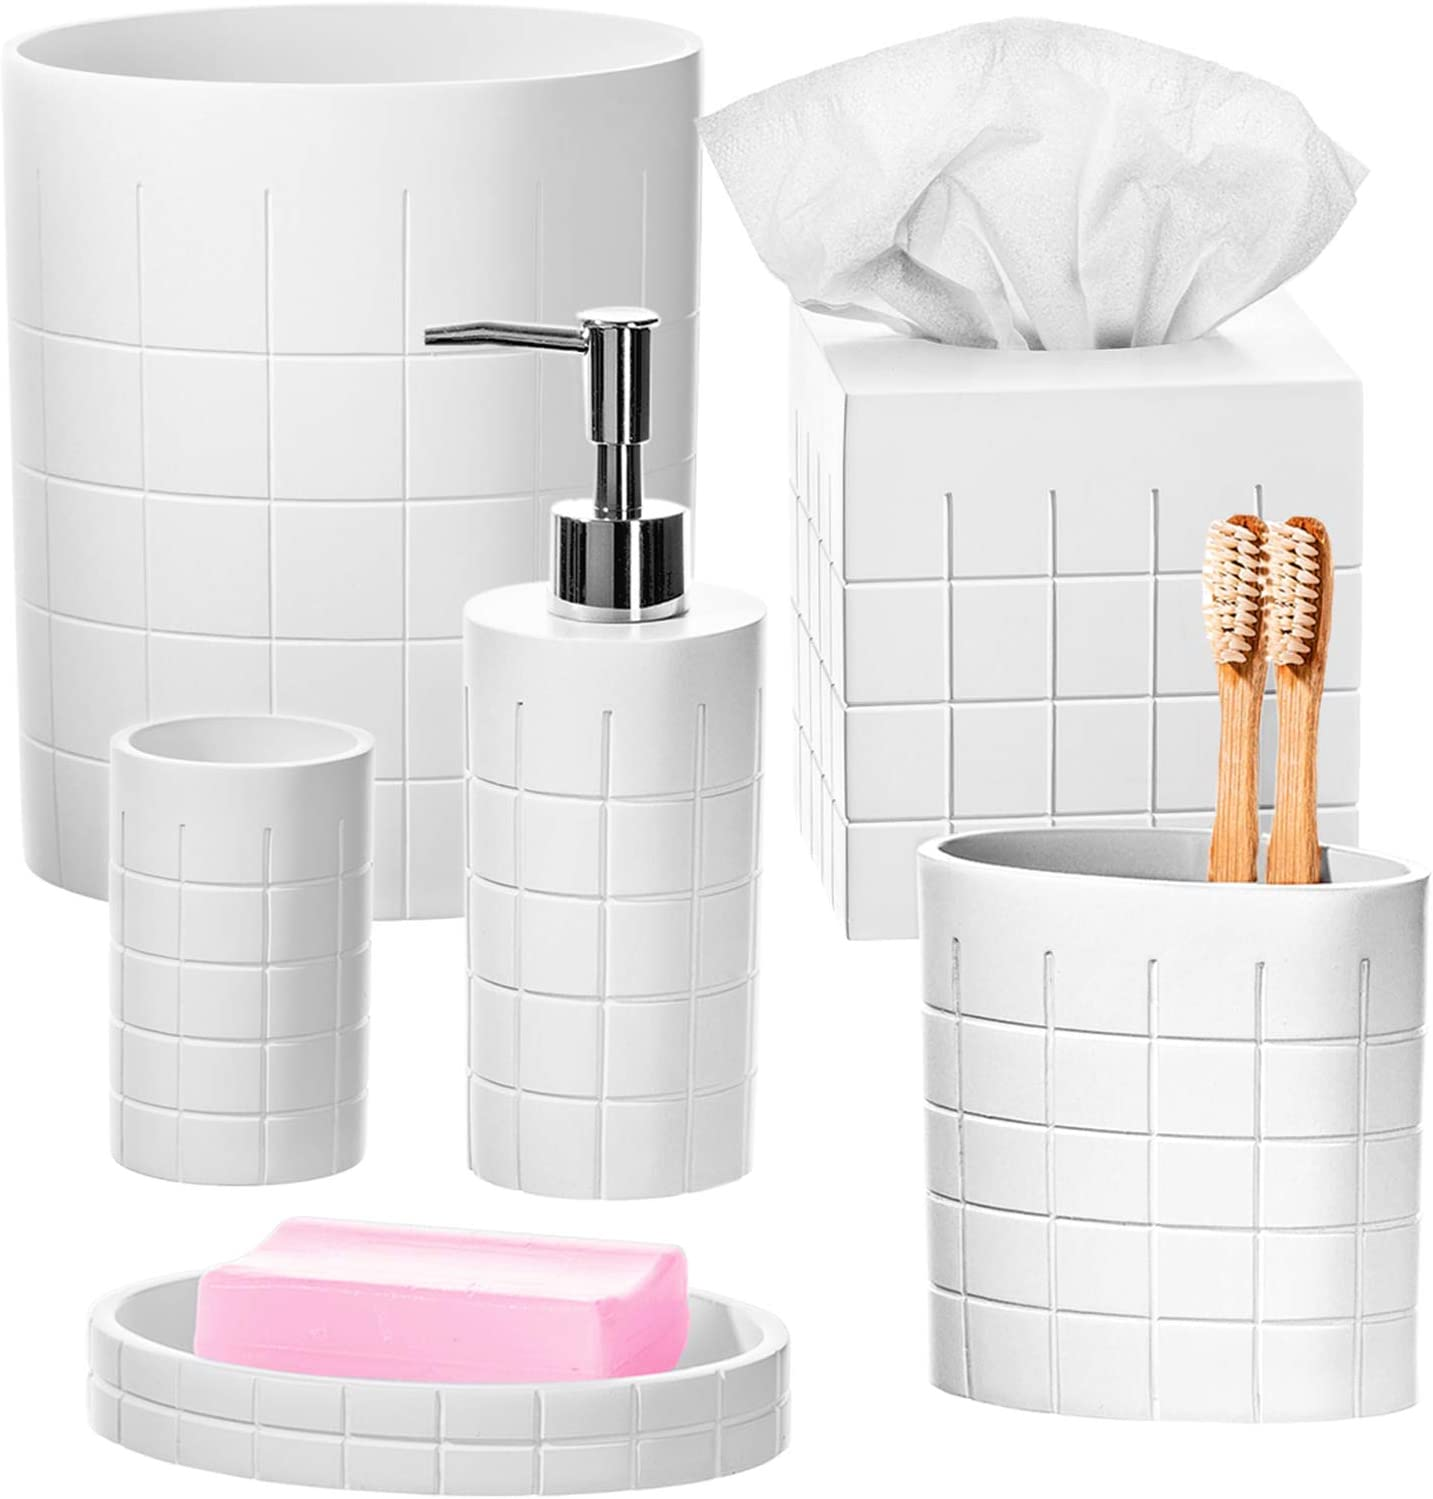 Polar White Bathroom Accessories Set - 6 Piece Bathroom Accessory Set Collection Features Soap Dispenser, Toothbrush Holder, Tumbler, Soap Dish, Square Tissue Cover and Wastebasket